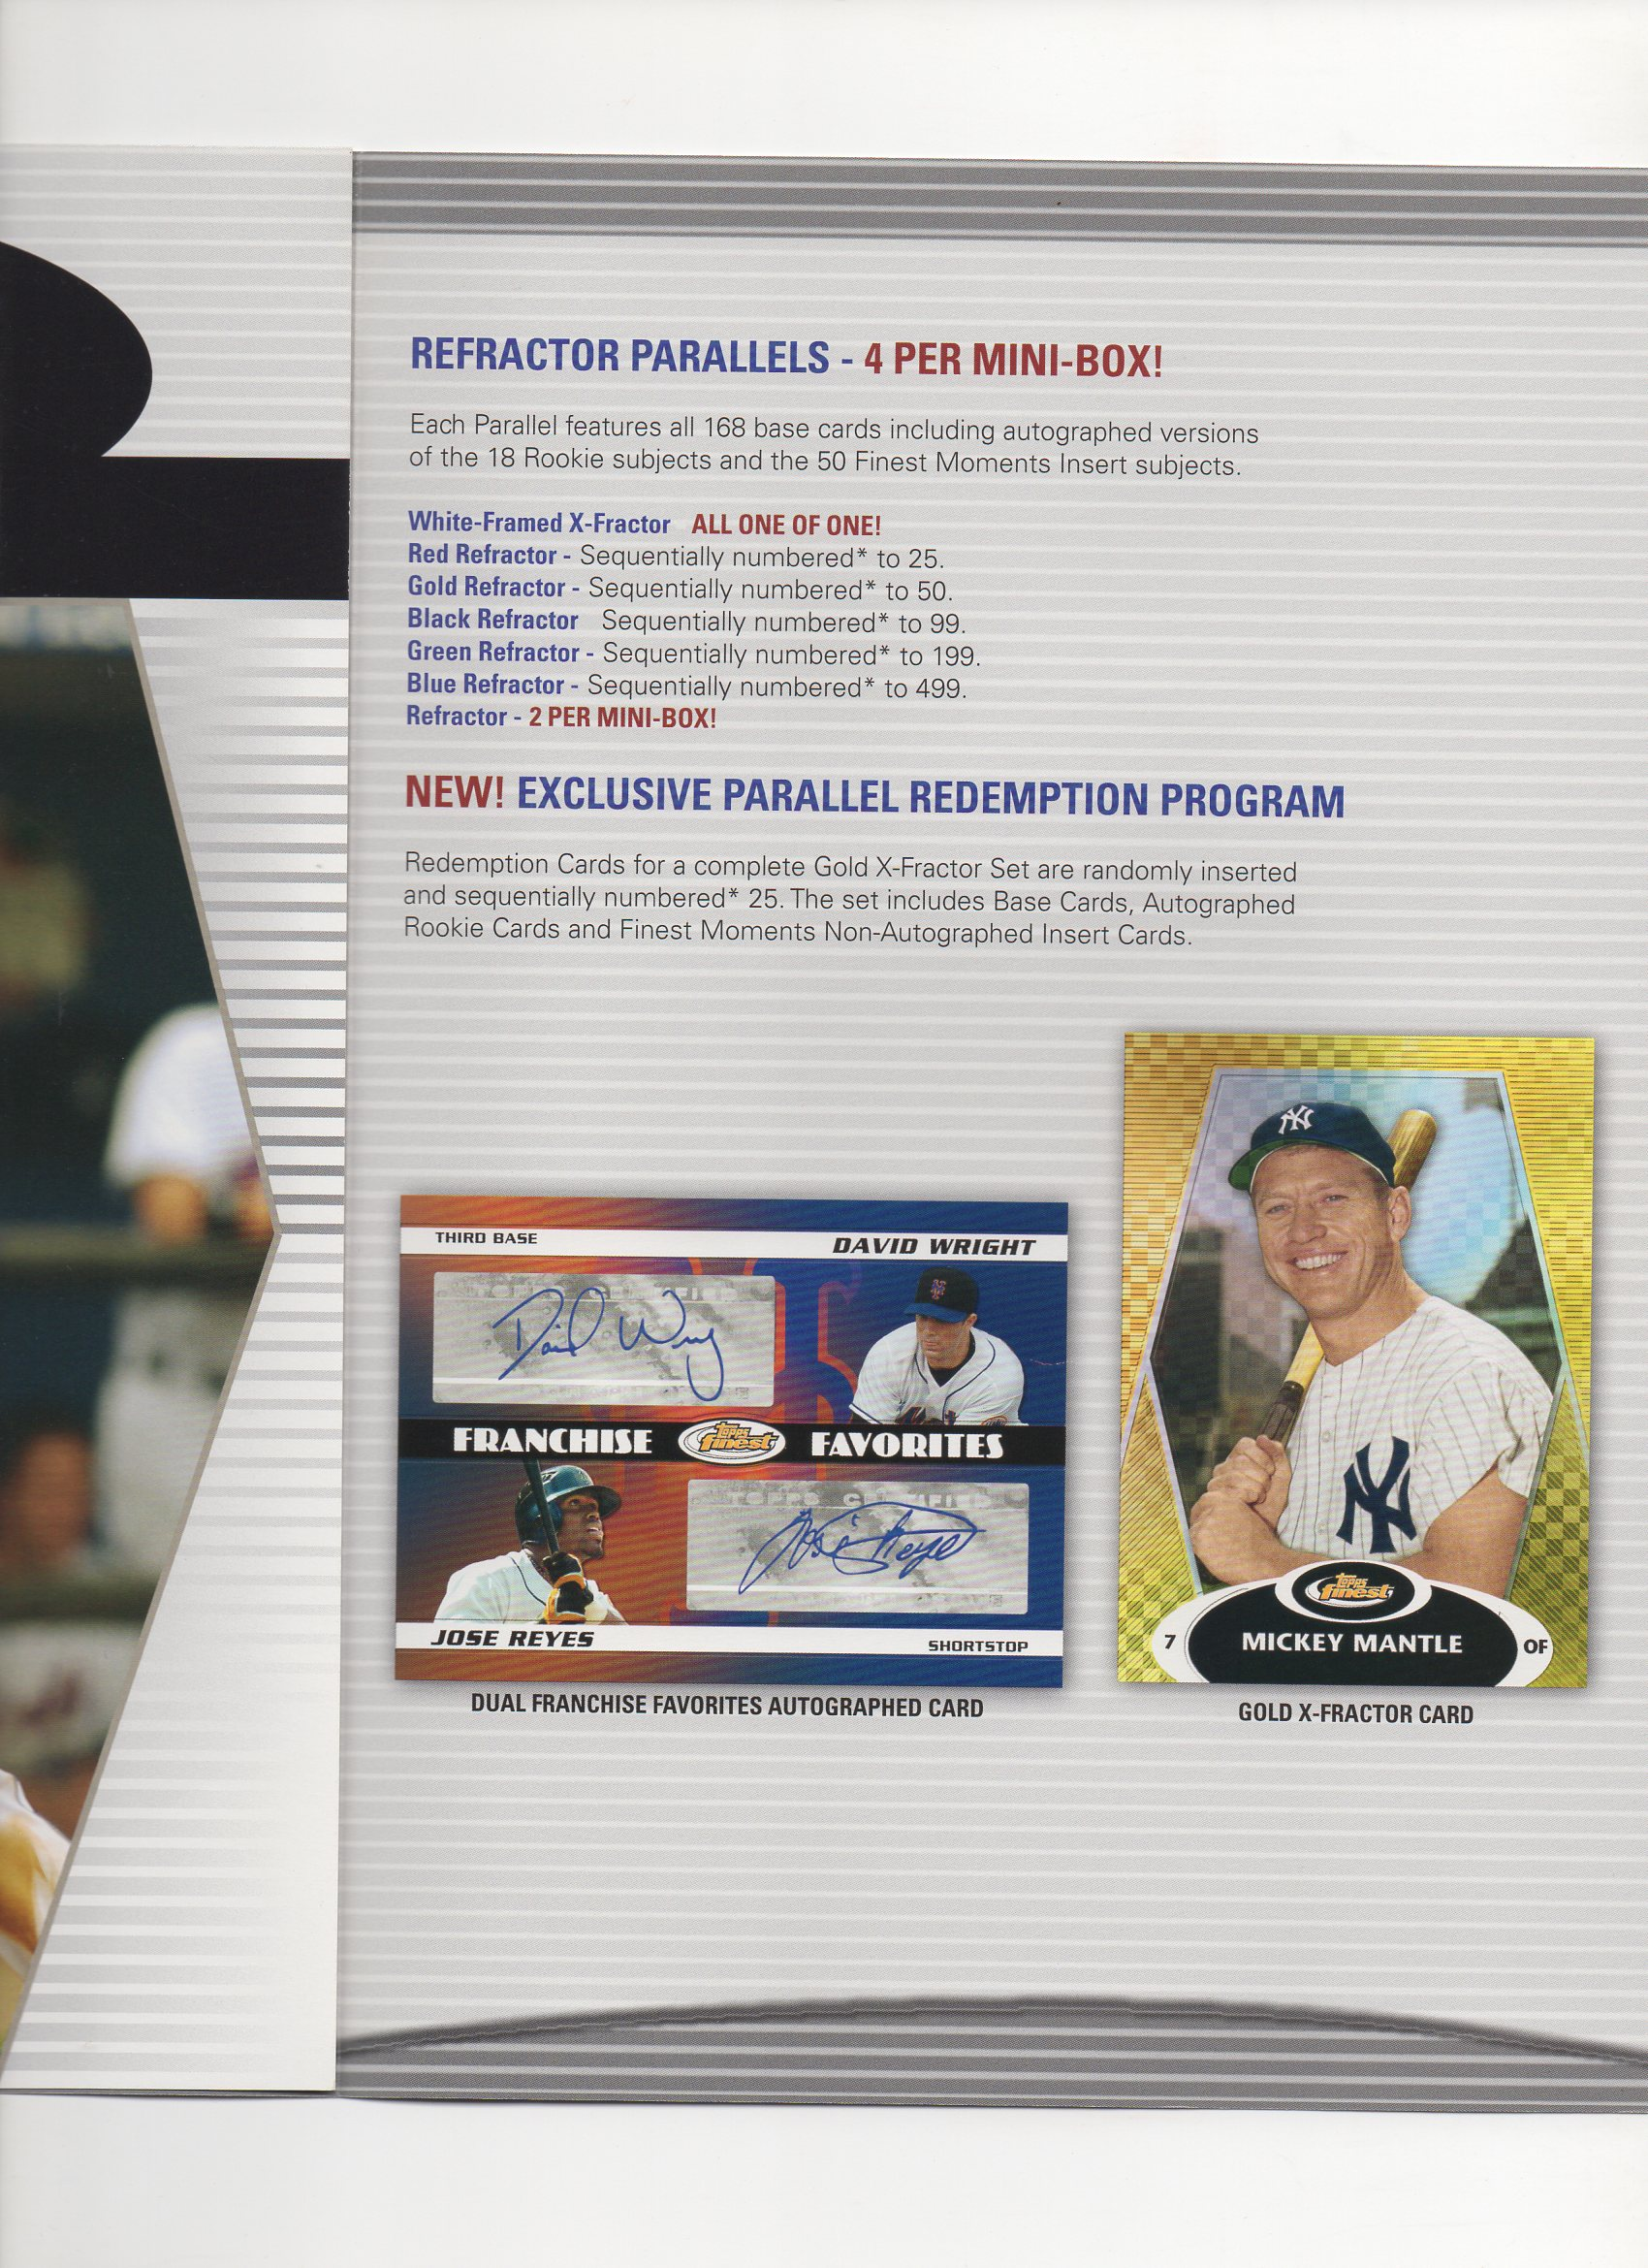 2008 topps 3 page heavy stock foldout